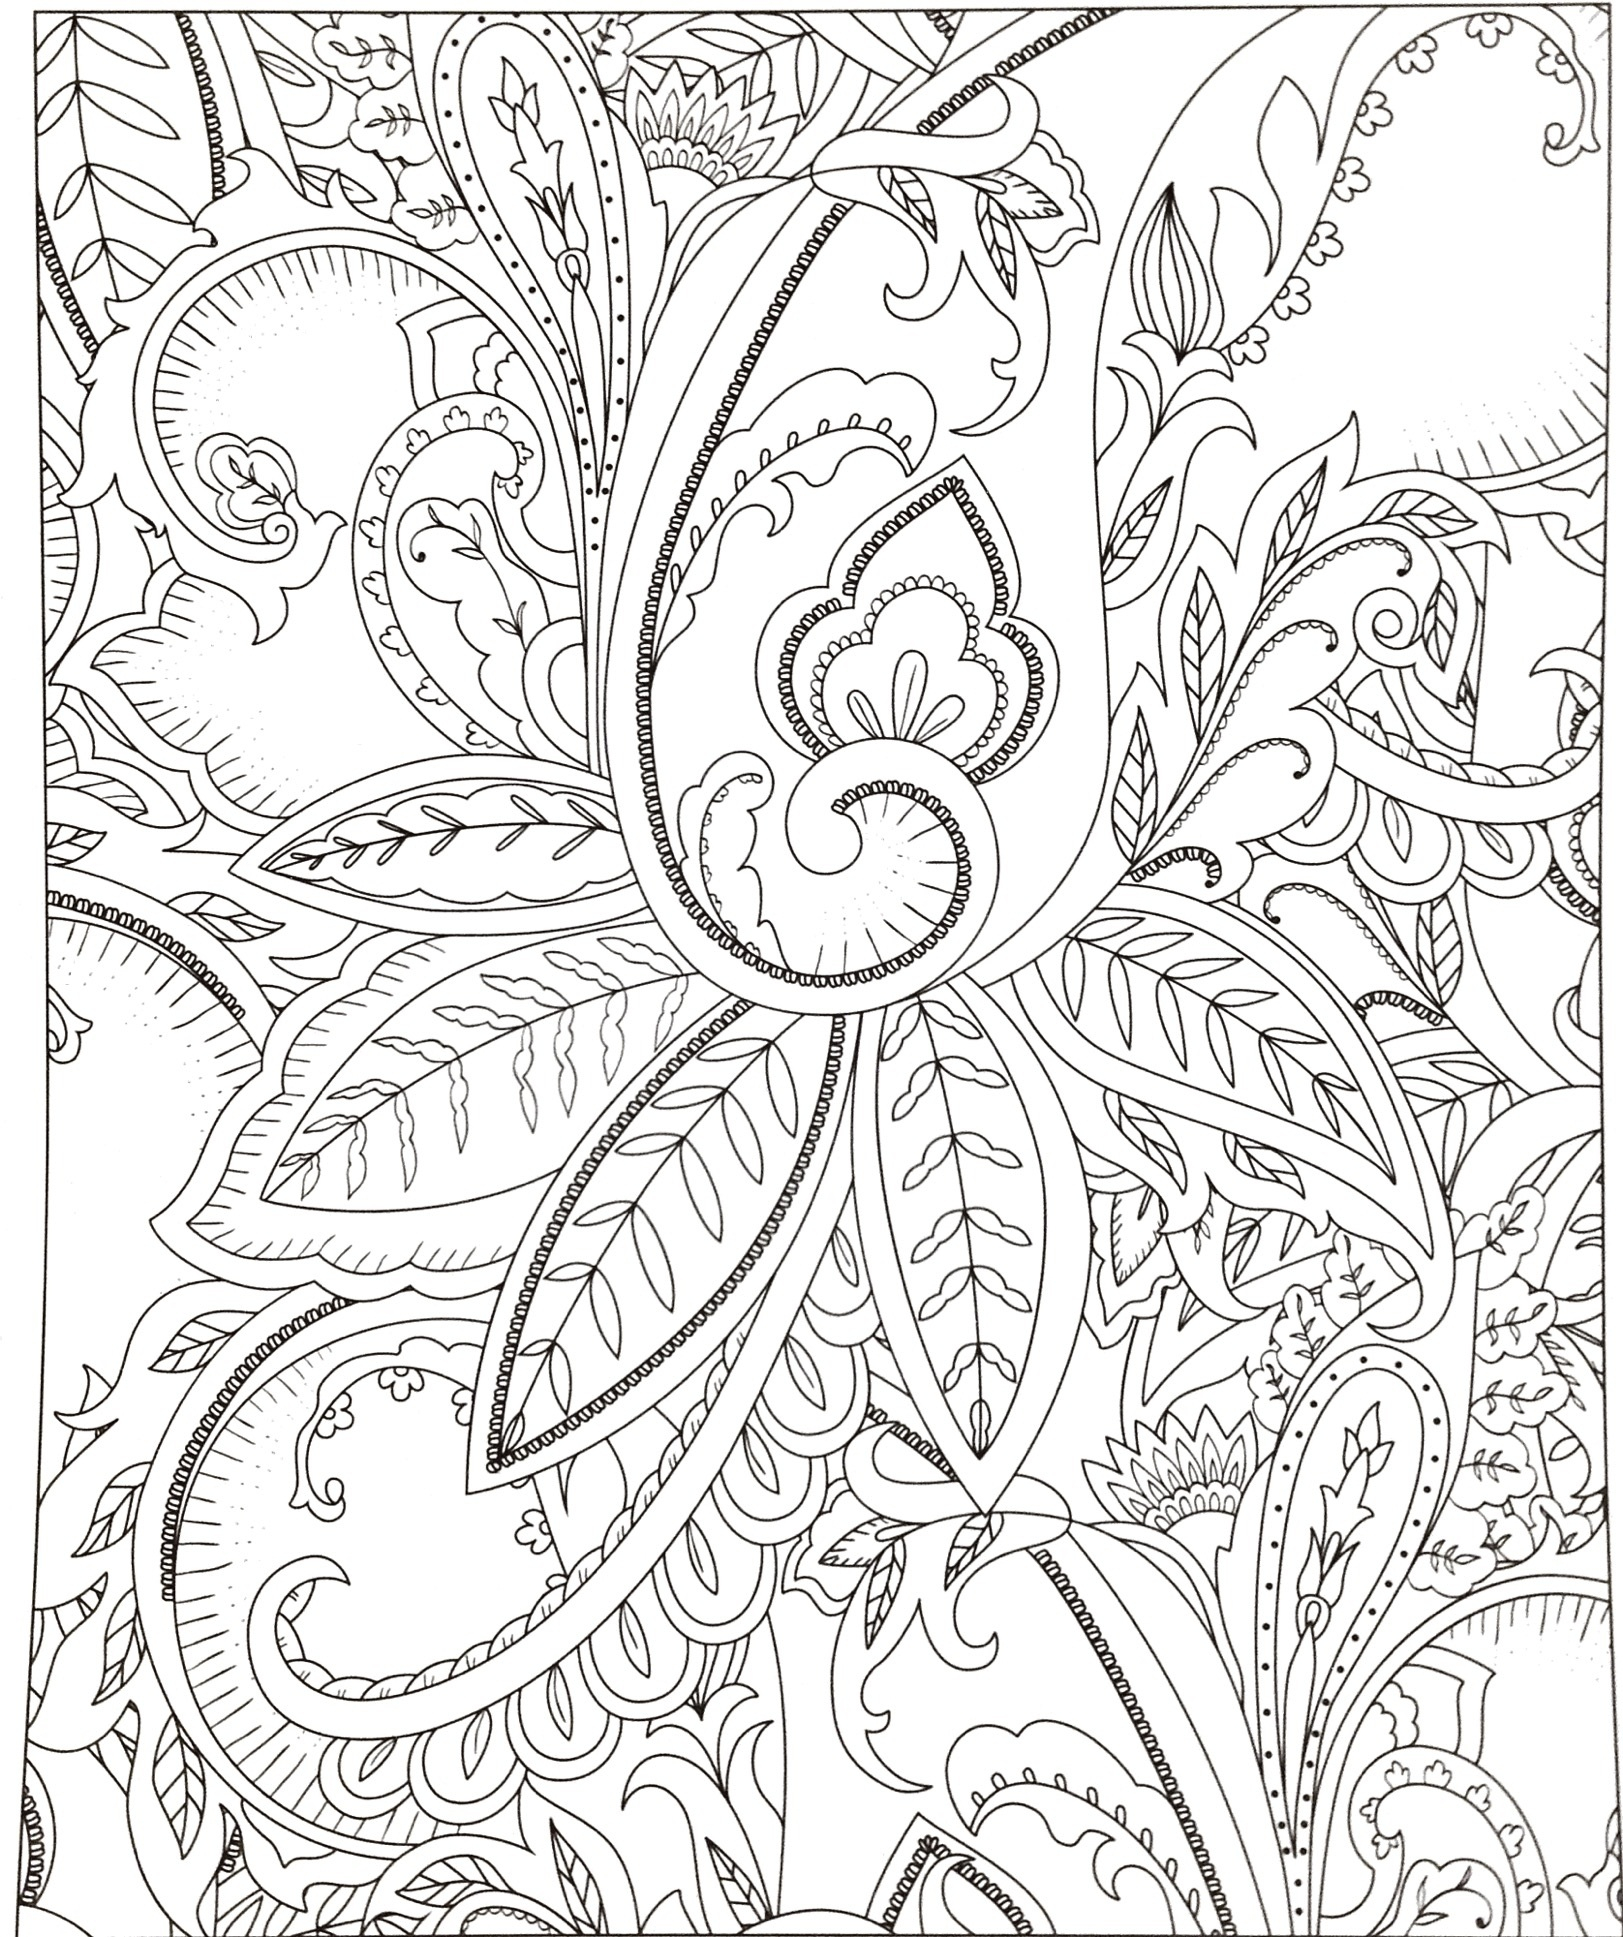 Cooking Coloring Pages  Gallery 7q - Save it to your computer